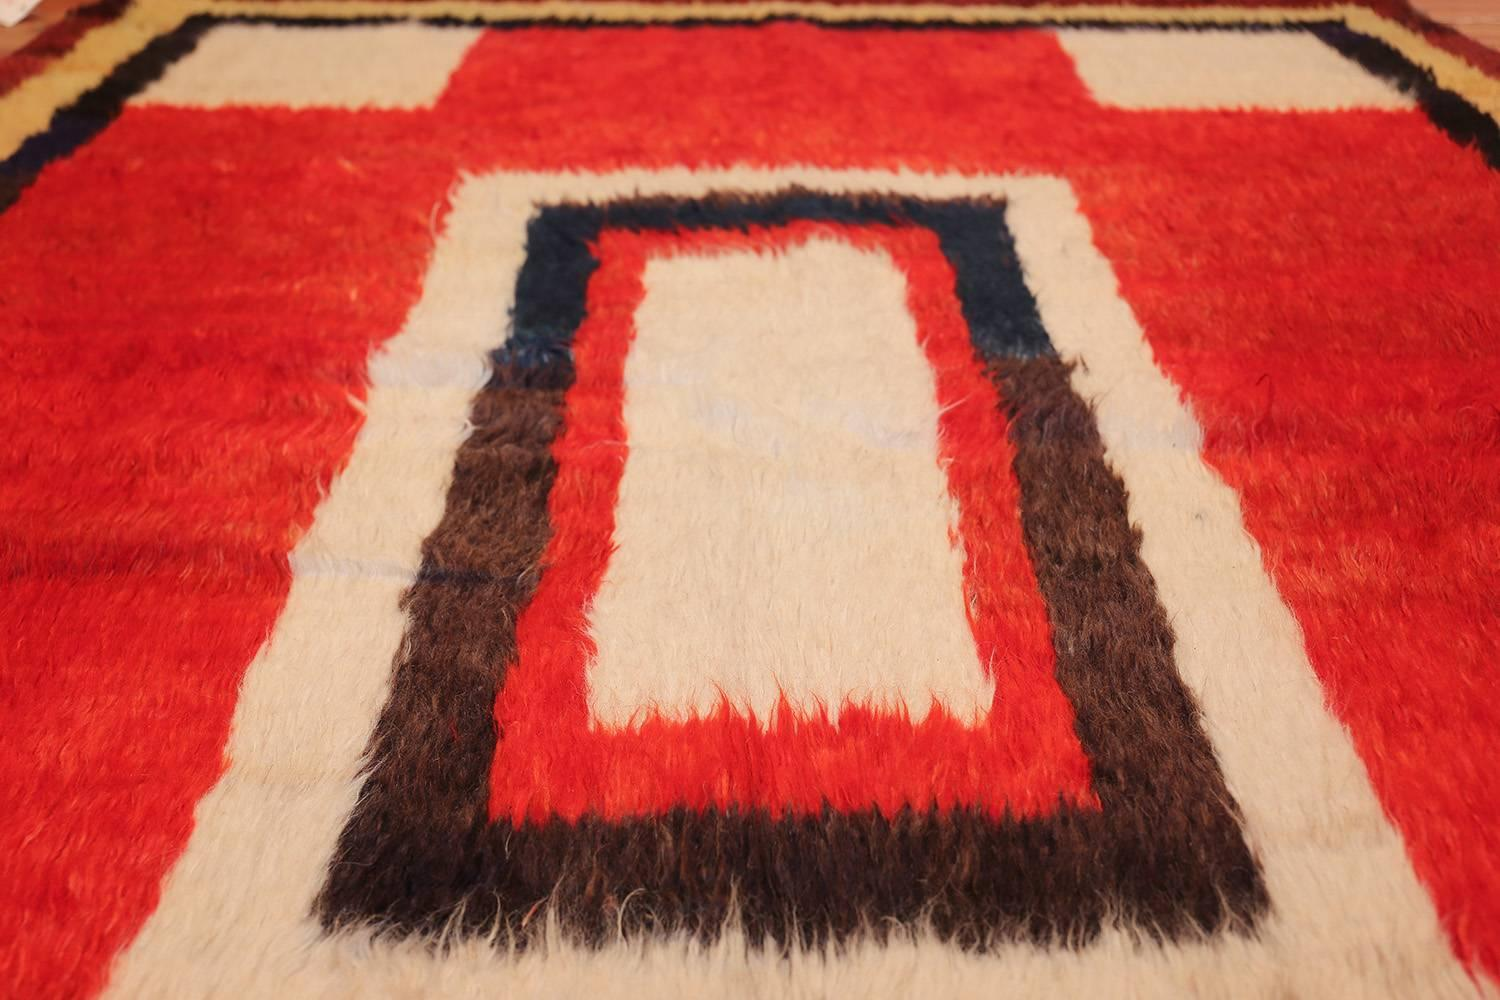 Persian Rugs Made With Extra High Pile And Very Simple, Graphic Designs  Focused On The